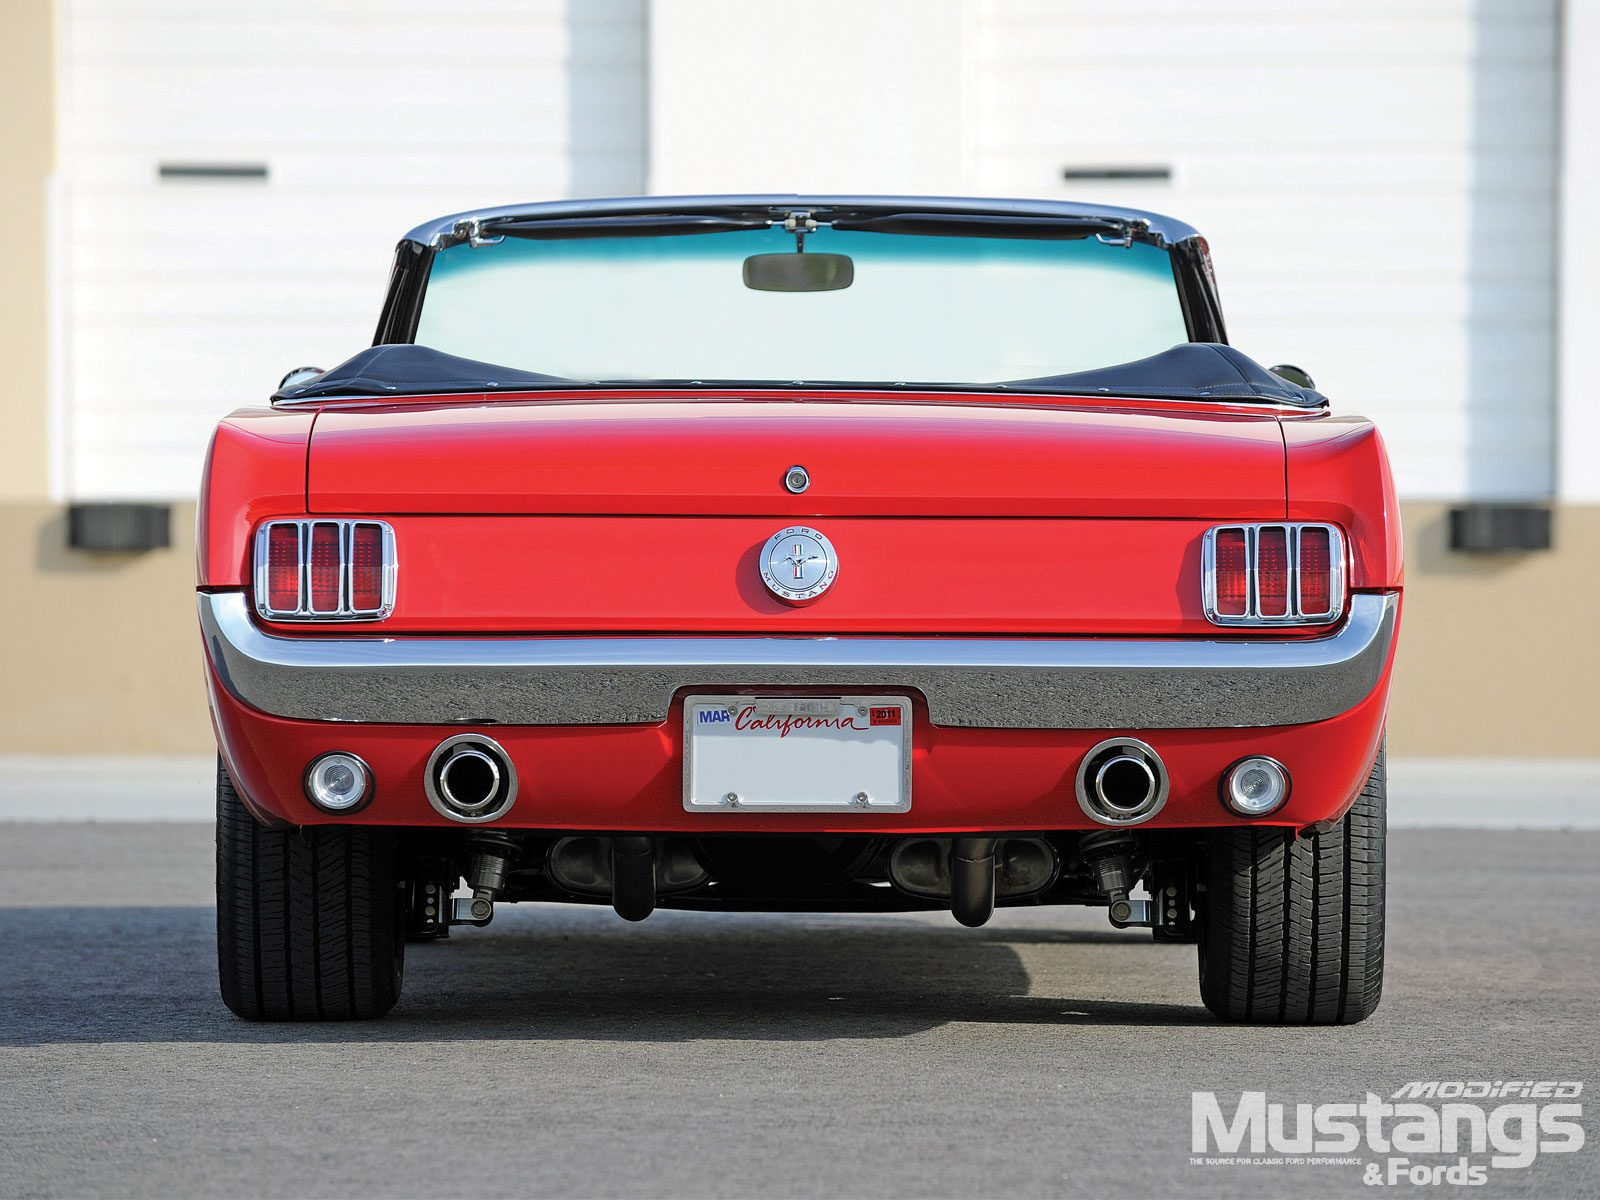 mdmp_1102_08_+1966_ford_mustang_convertible+_rear_view.jpg